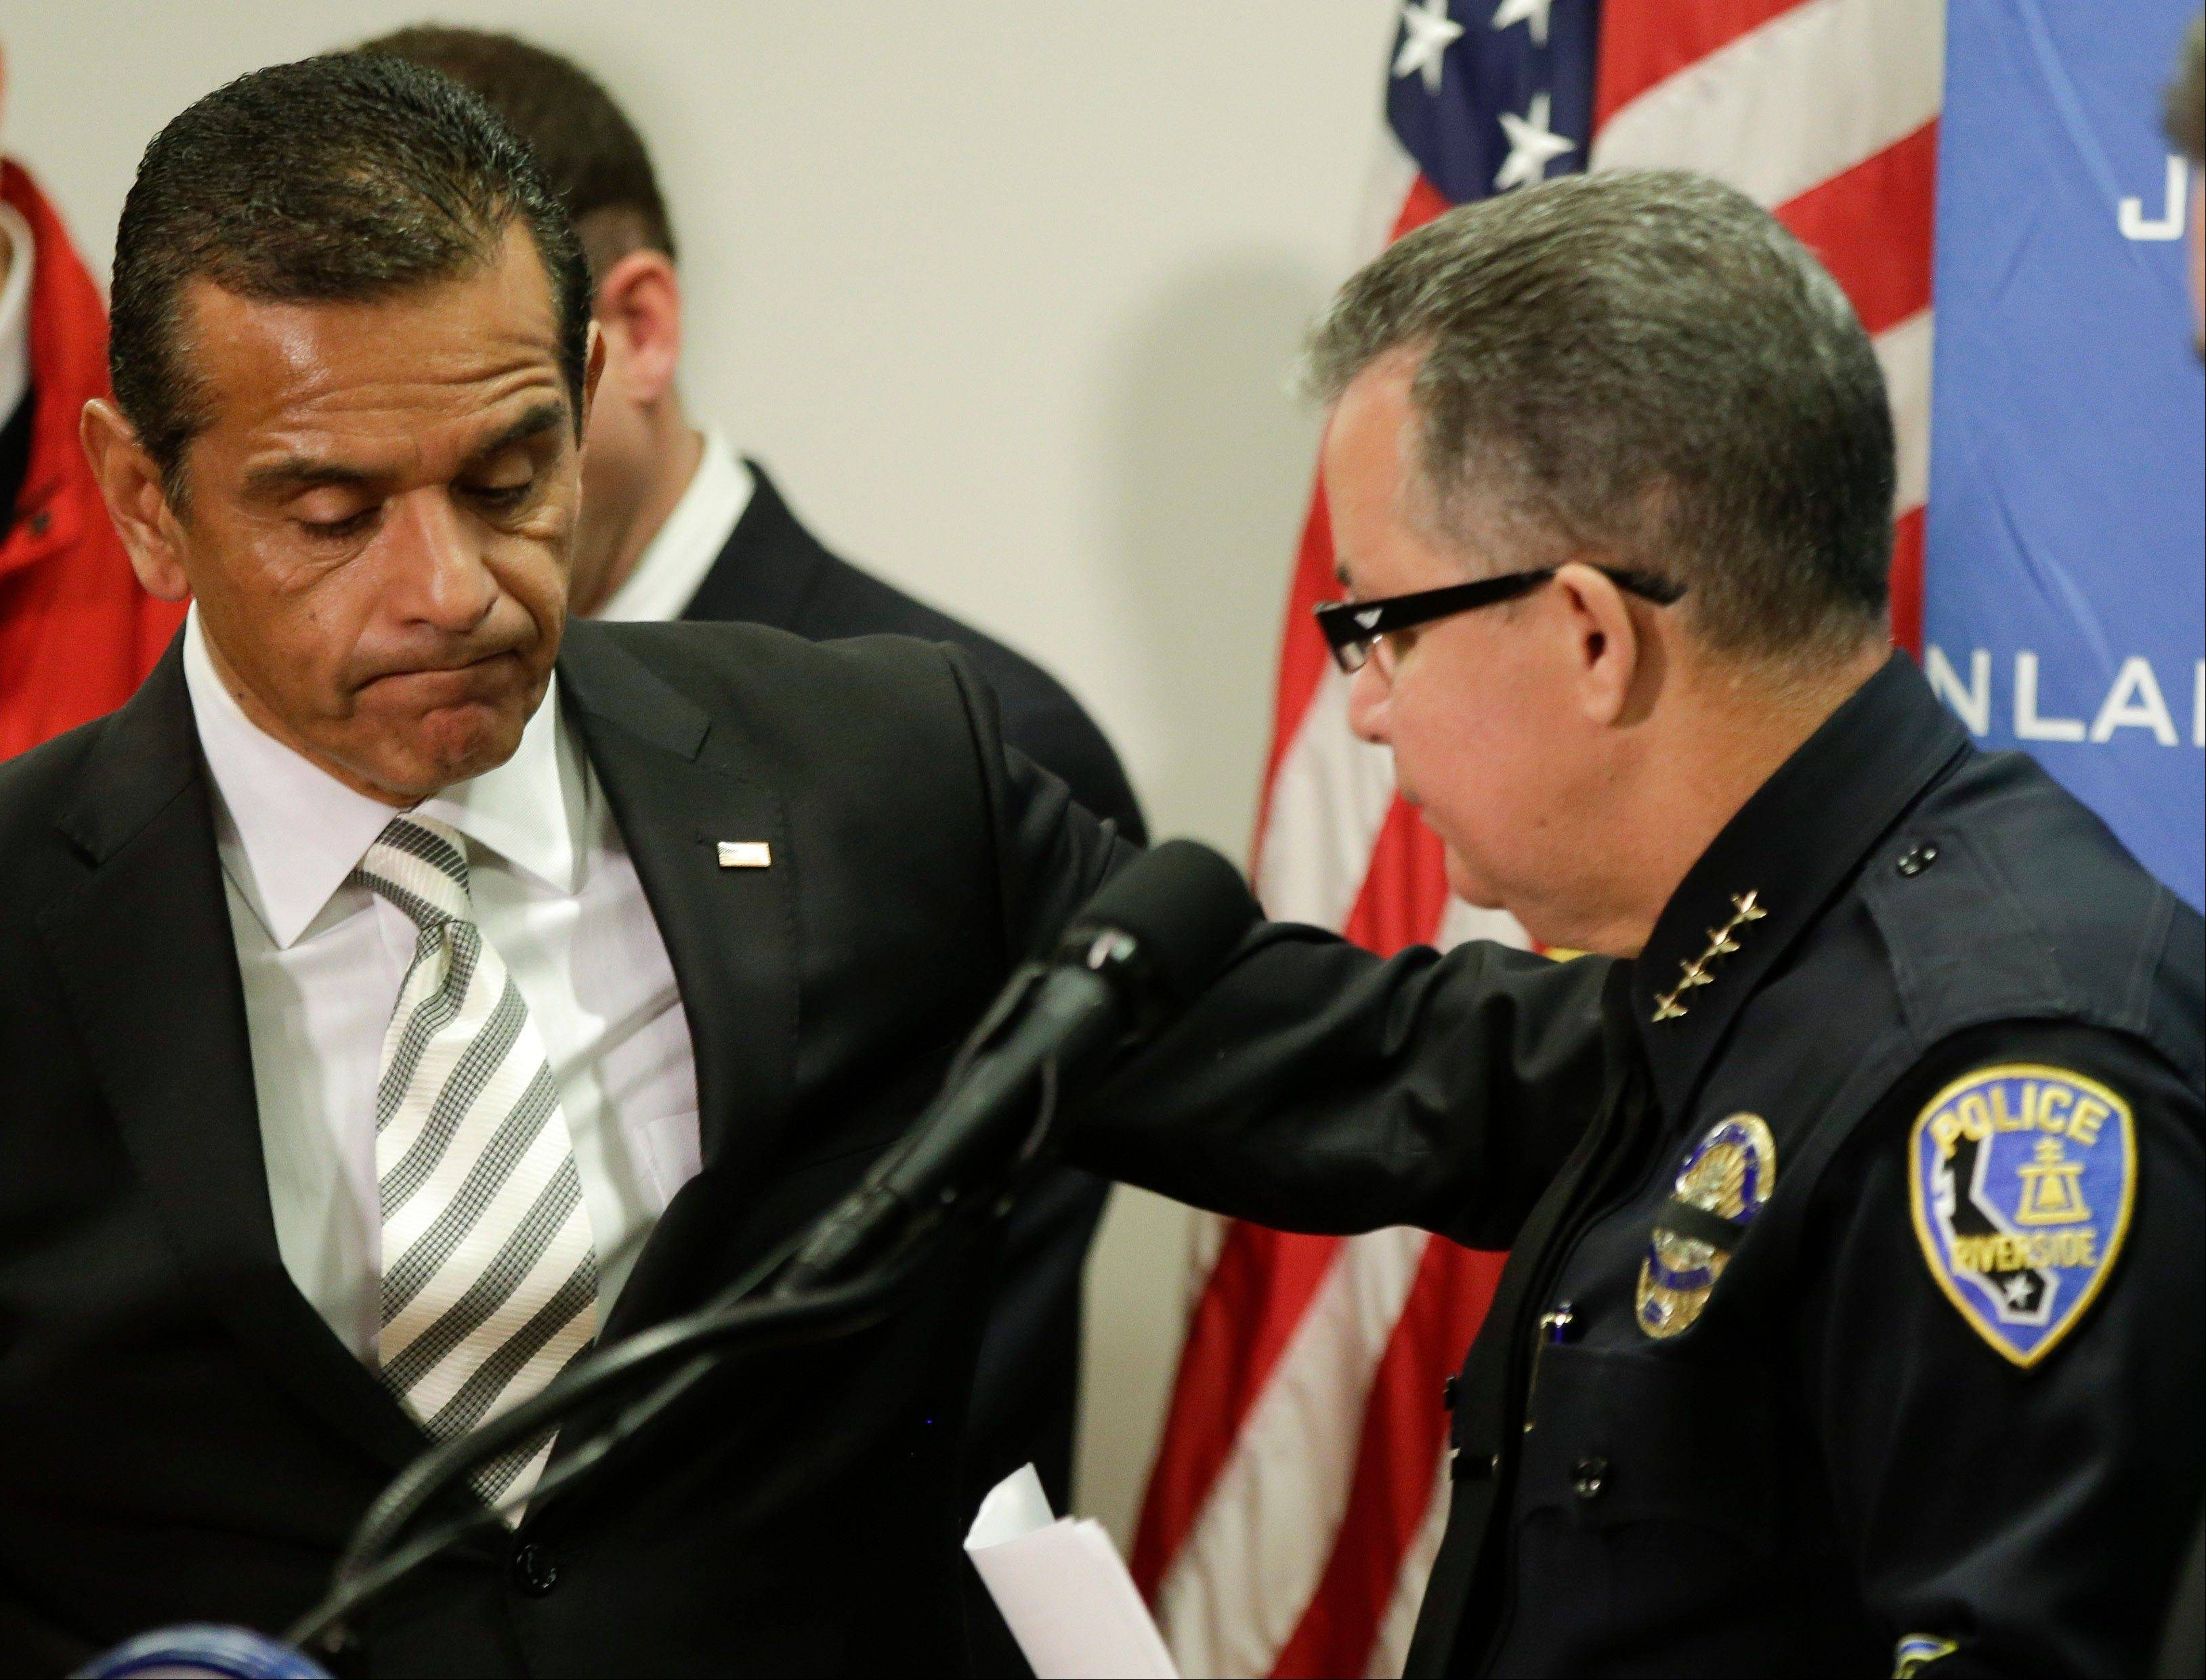 Los Angeles Mayor Antonio Villaraigosa, left, comforts Riverside Police Chief Sergio Diaz Sunday after Diaz announced funeral plans for Riverside Police officer Michael Crain, who authorities say was killed by fired Los Angeles police officer Christopher Dorner.